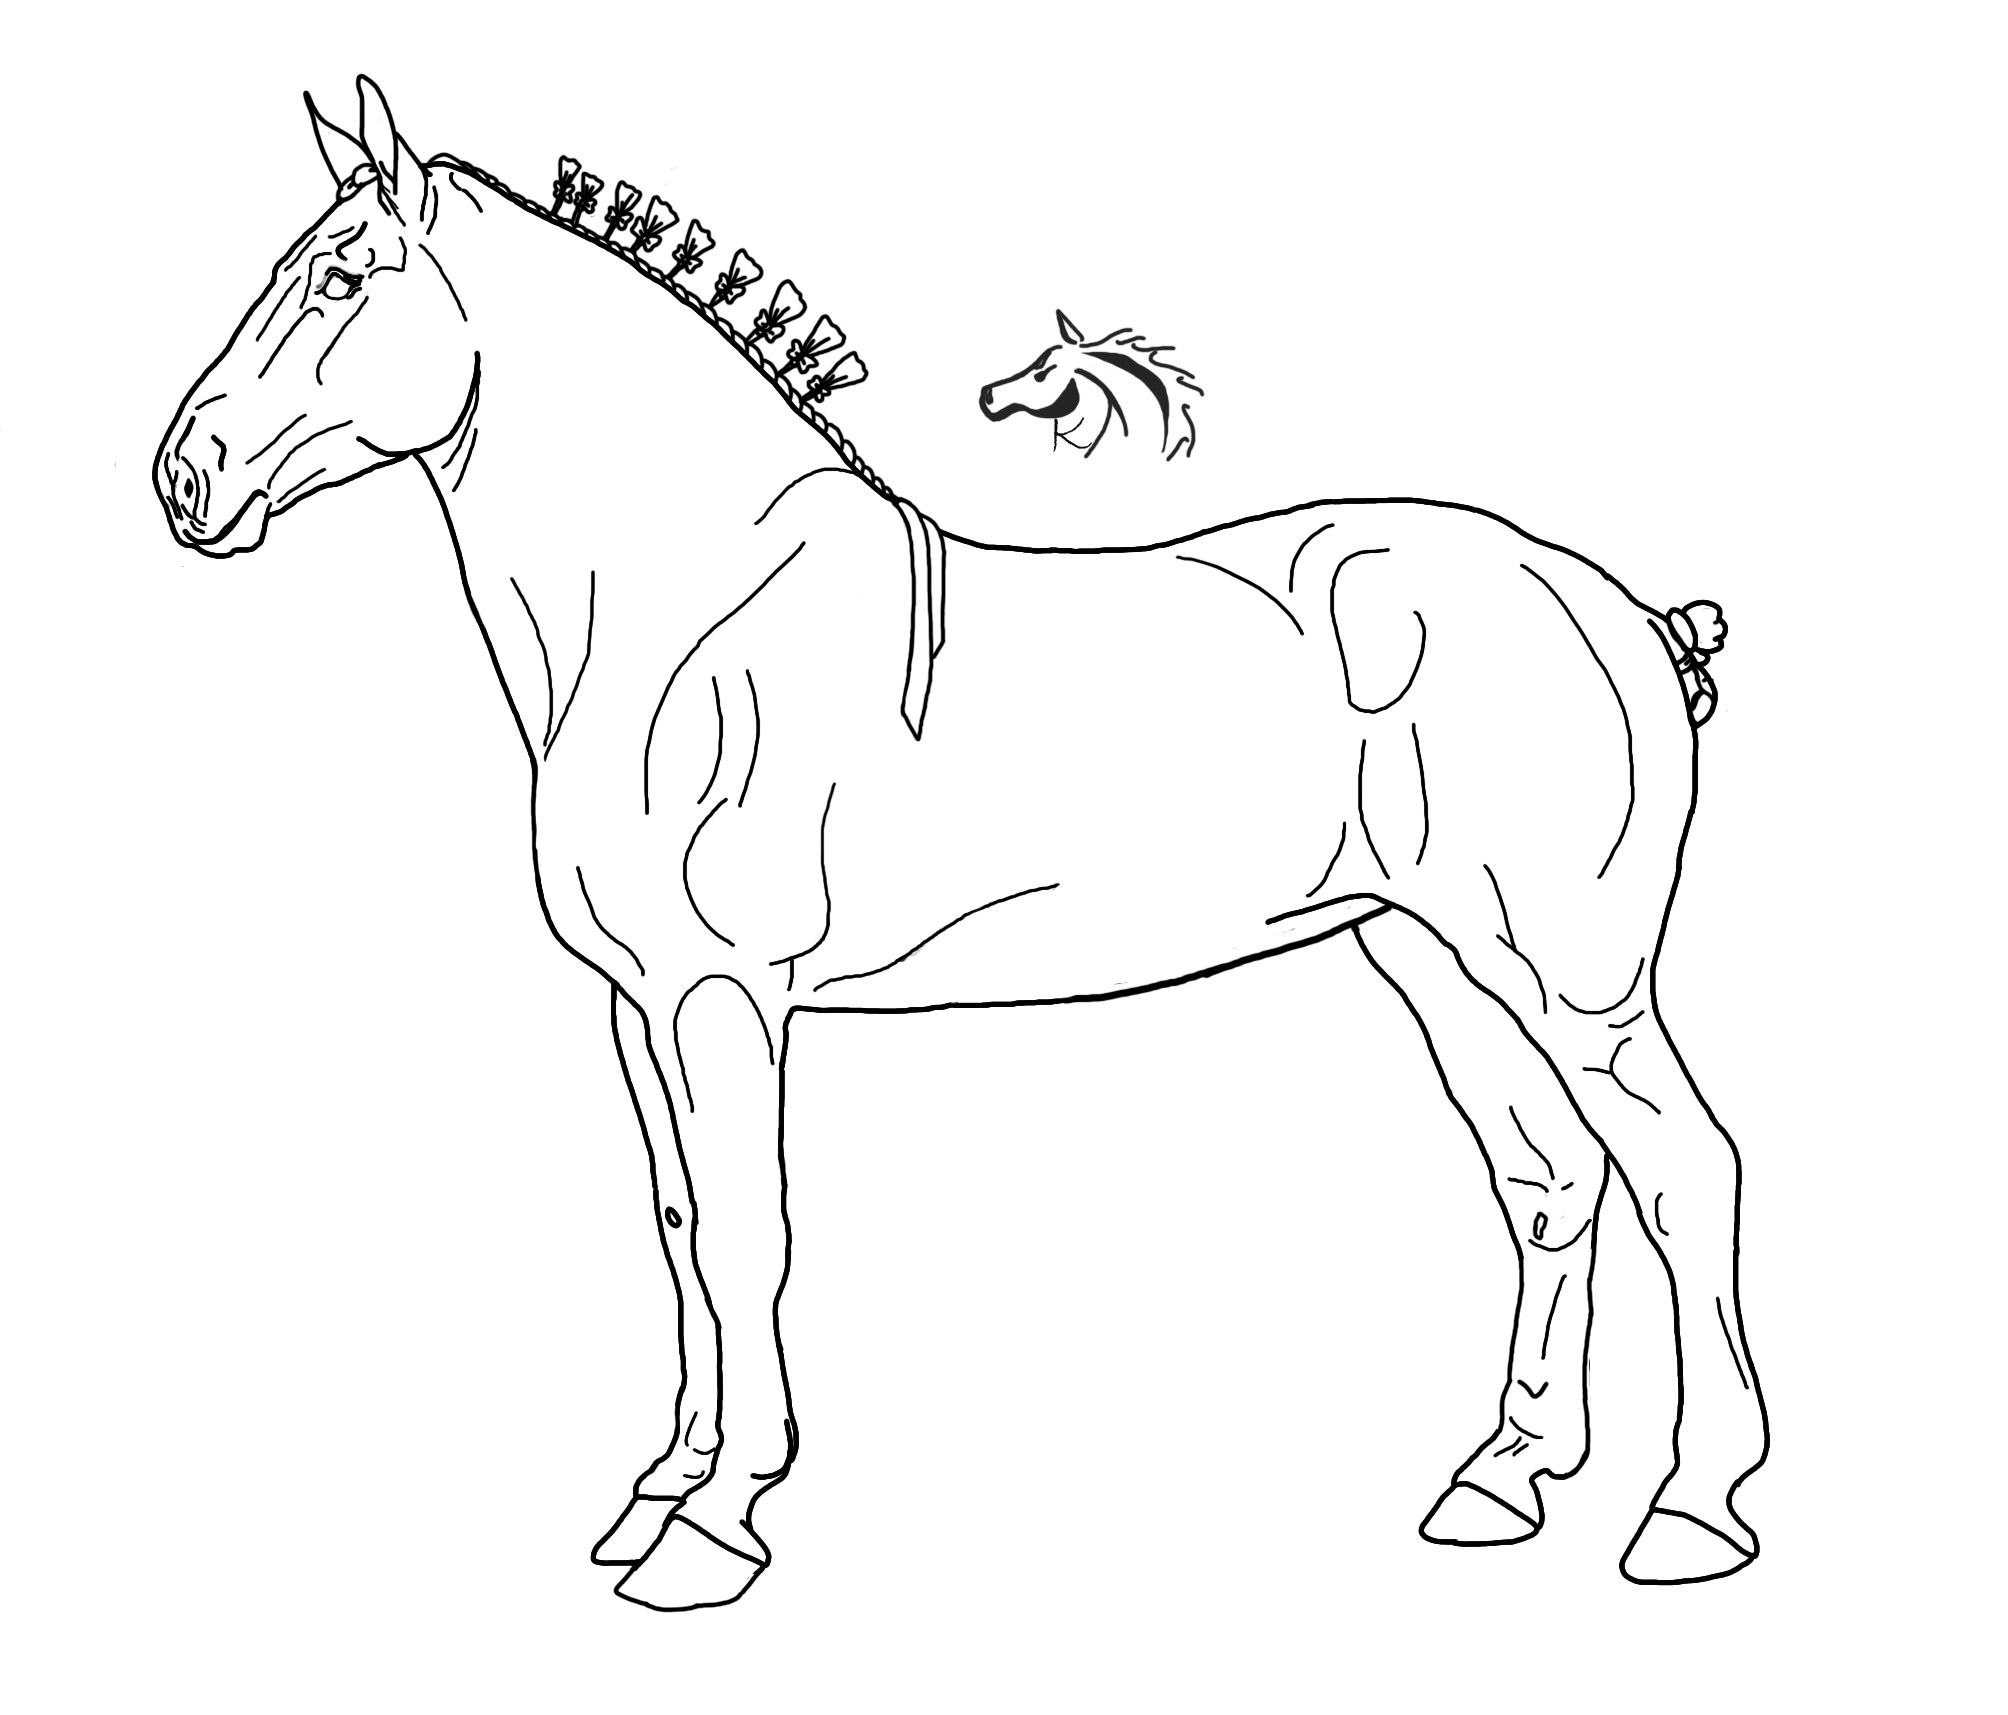 Draft Horse Coloring Pages At Getcolorings